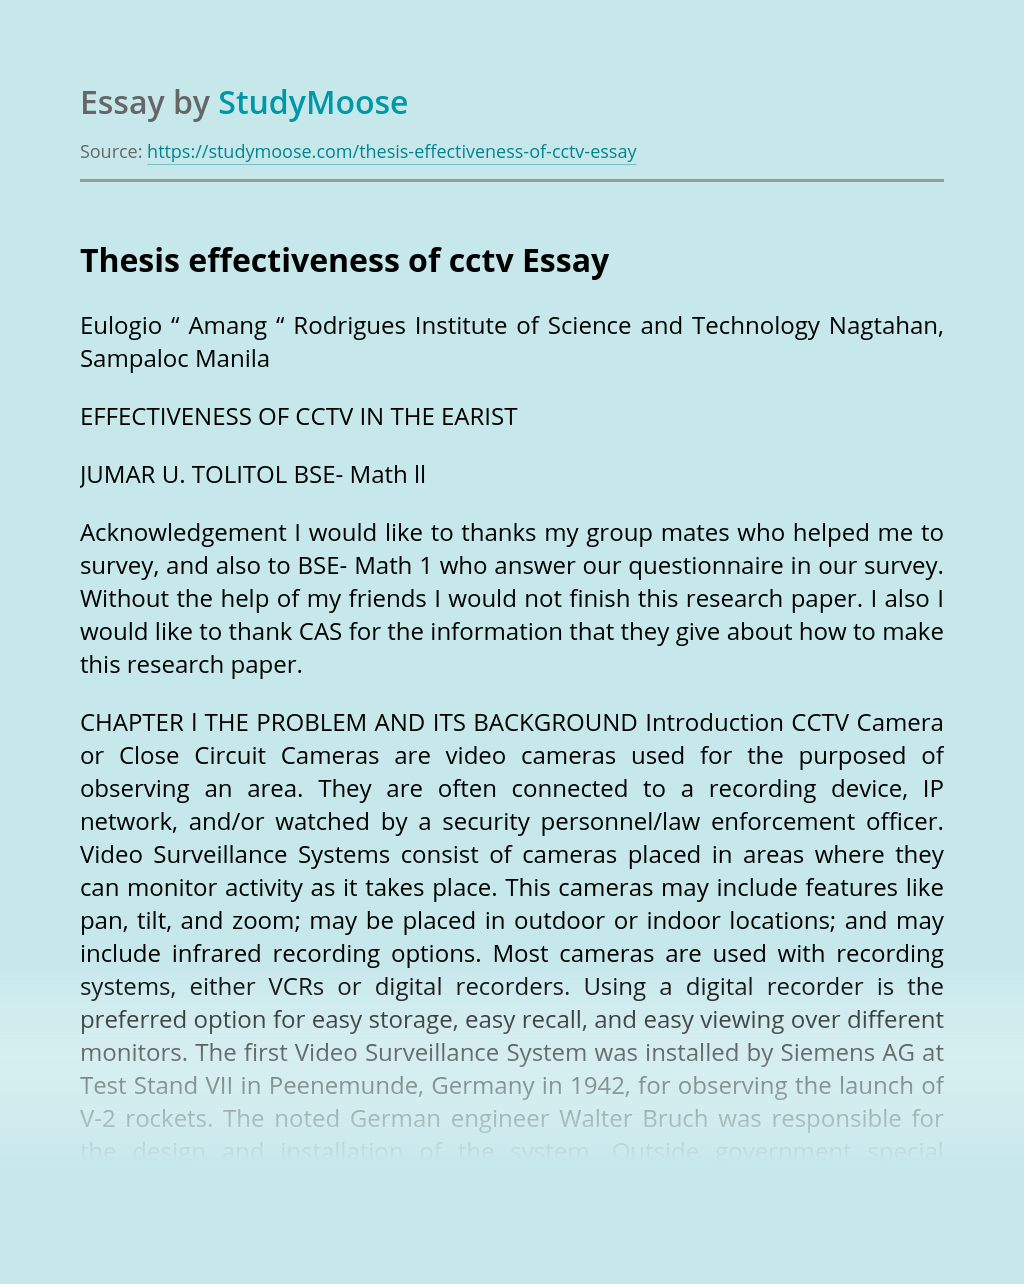 Thesis effectiveness of cctv